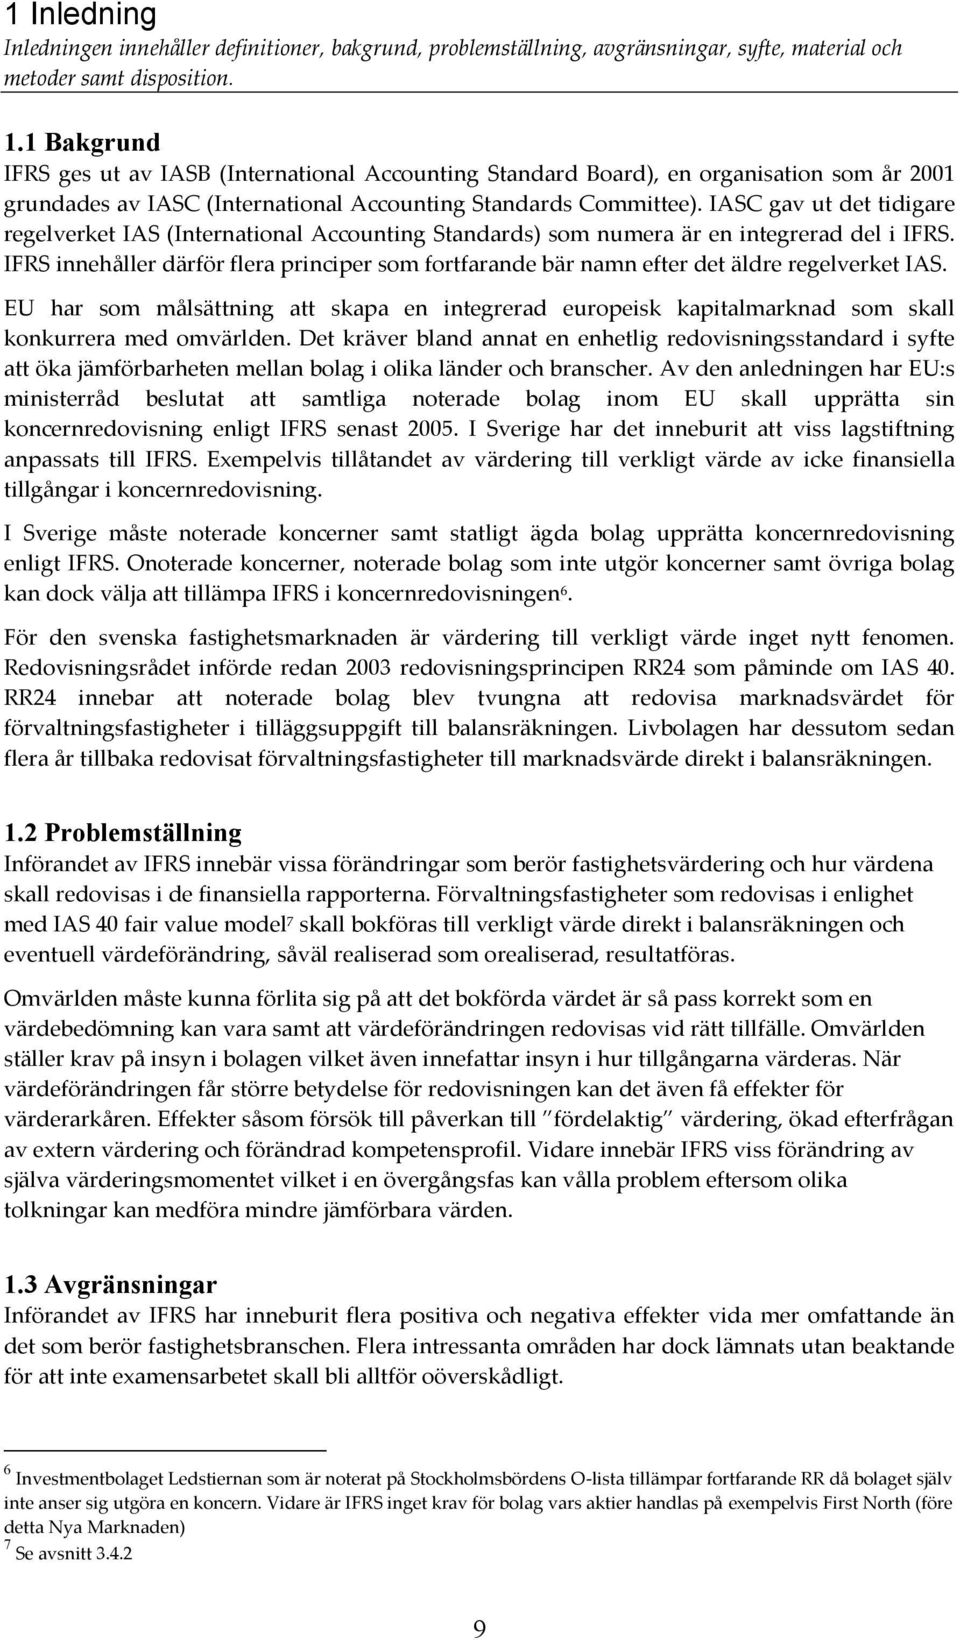 IASC gav ut det tidigare regelverket IAS (International Accounting Standards) som numera är en integrerad del i IFRS.